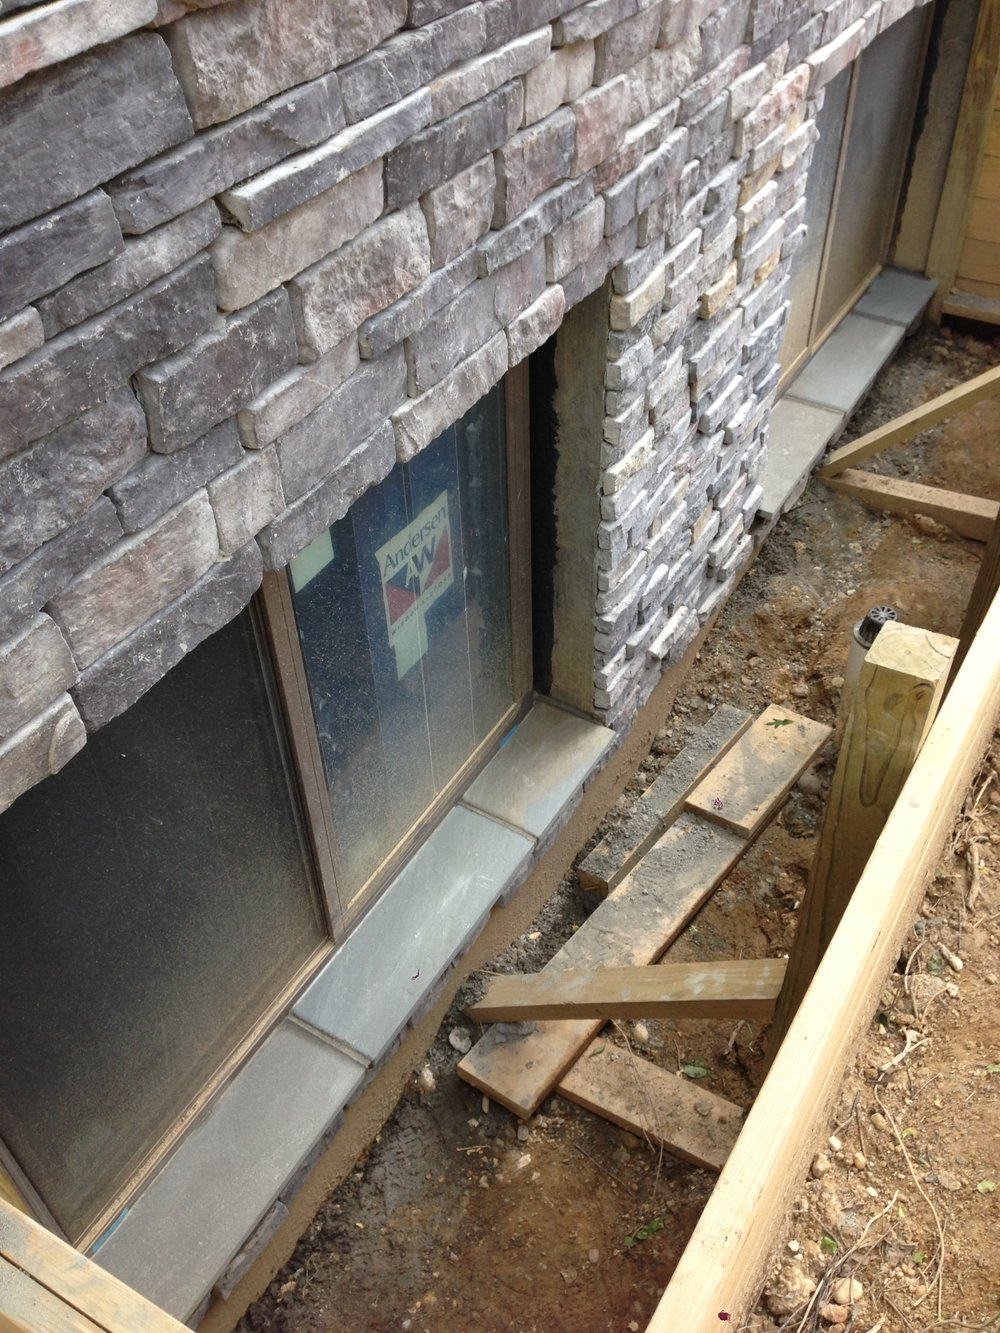 Stone sill installed. I should have used this flagstone for the water table and saved some money. Always learning.